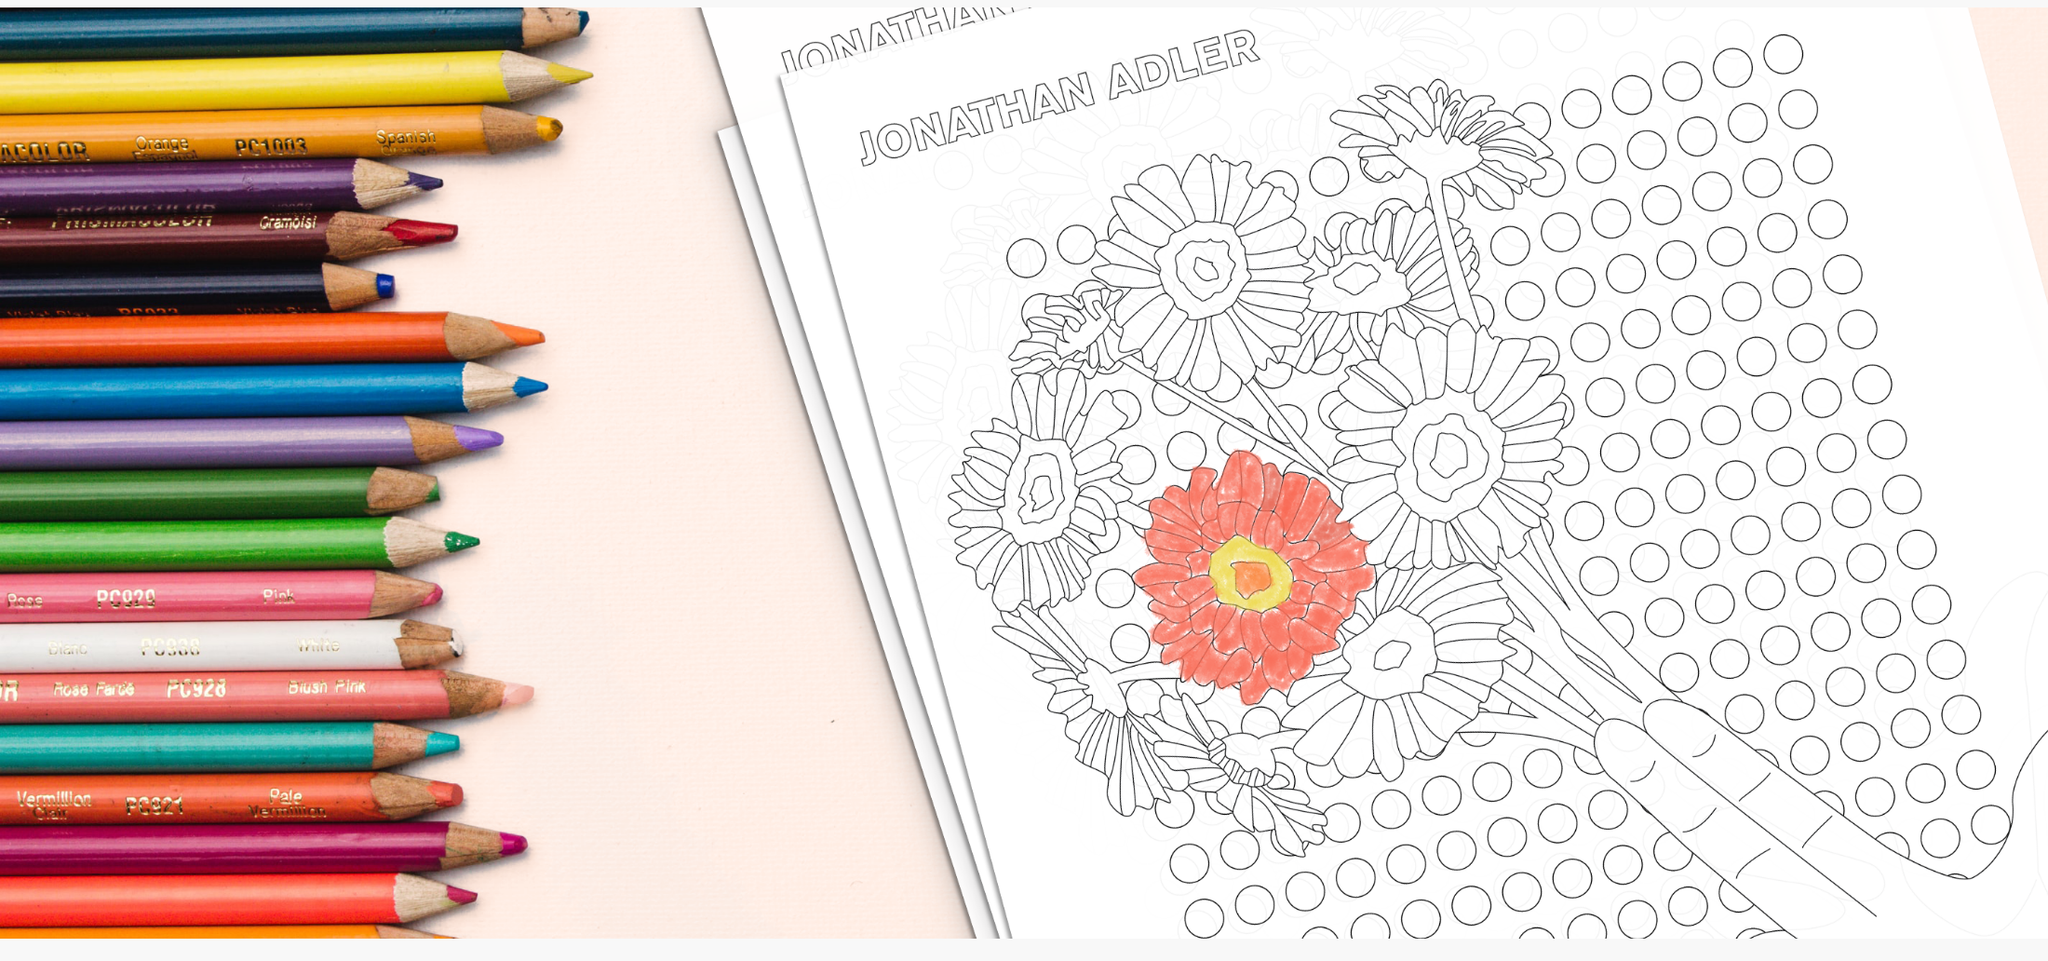 First Look: J'Adult Coloring Pages